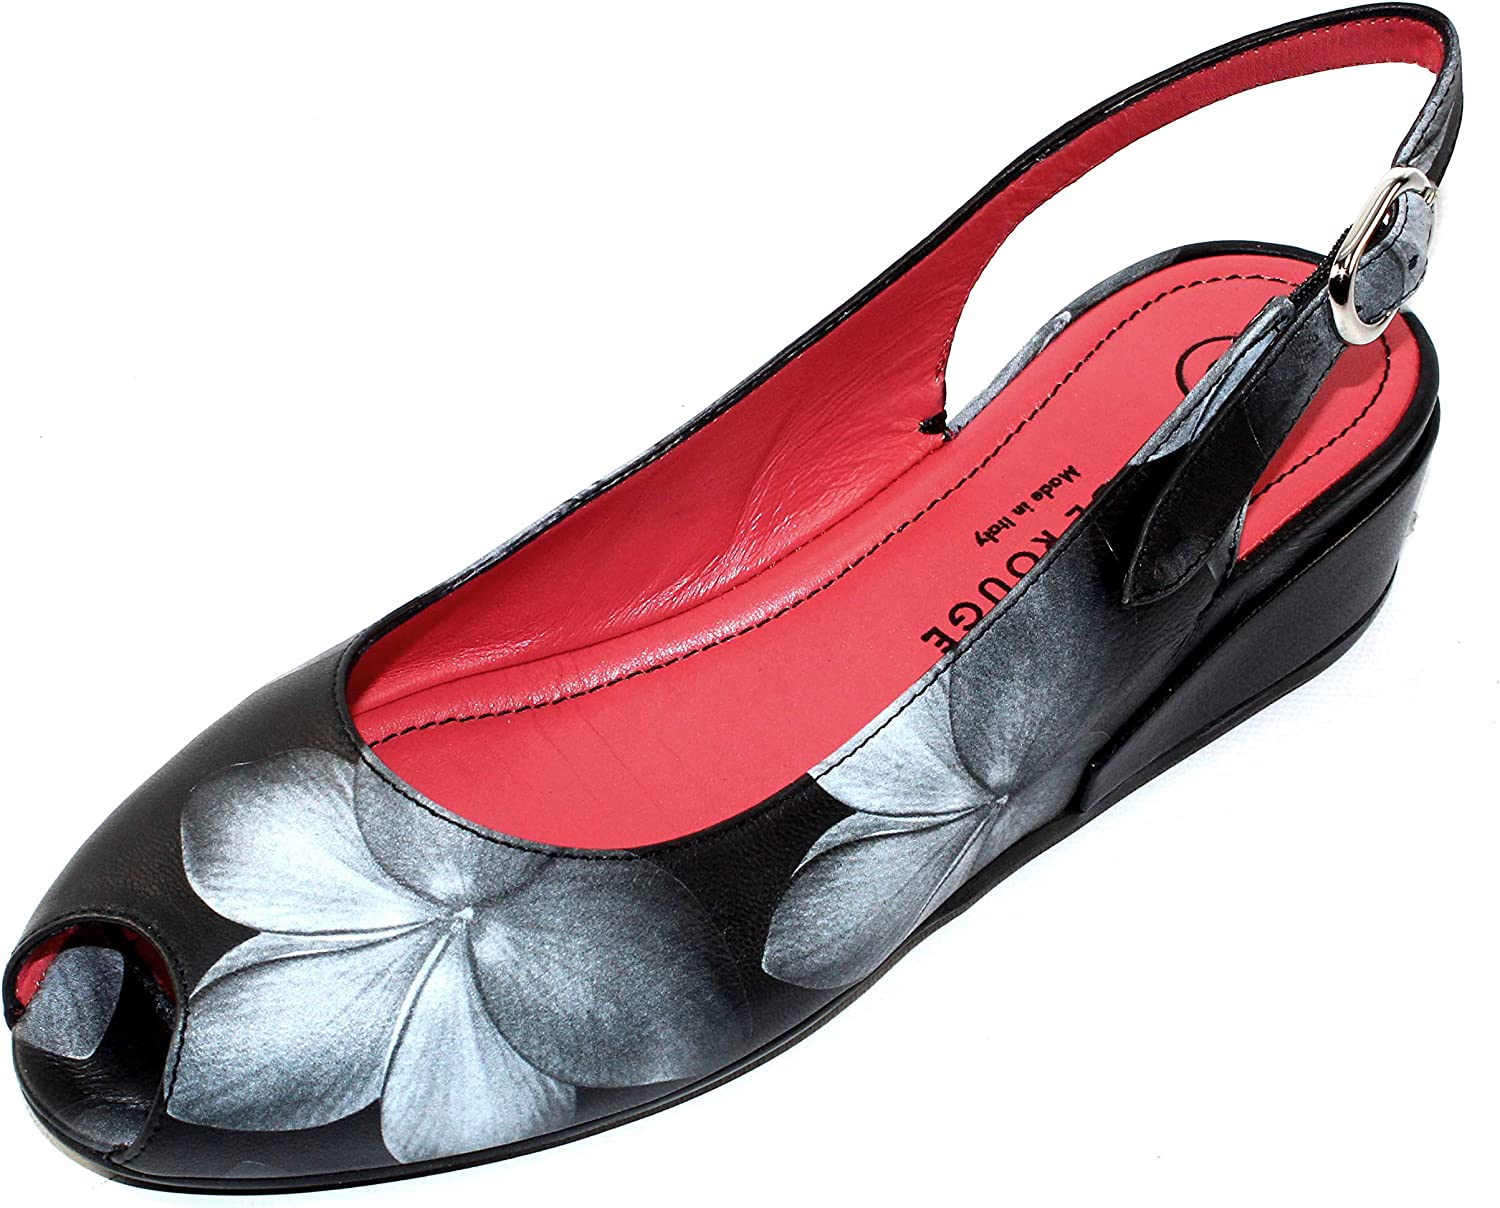 Pas De red Women's Silvia 2362 in Grey-Black Embossed Floral Nappa Leather Black Nappa Leather - Size 39.5 M